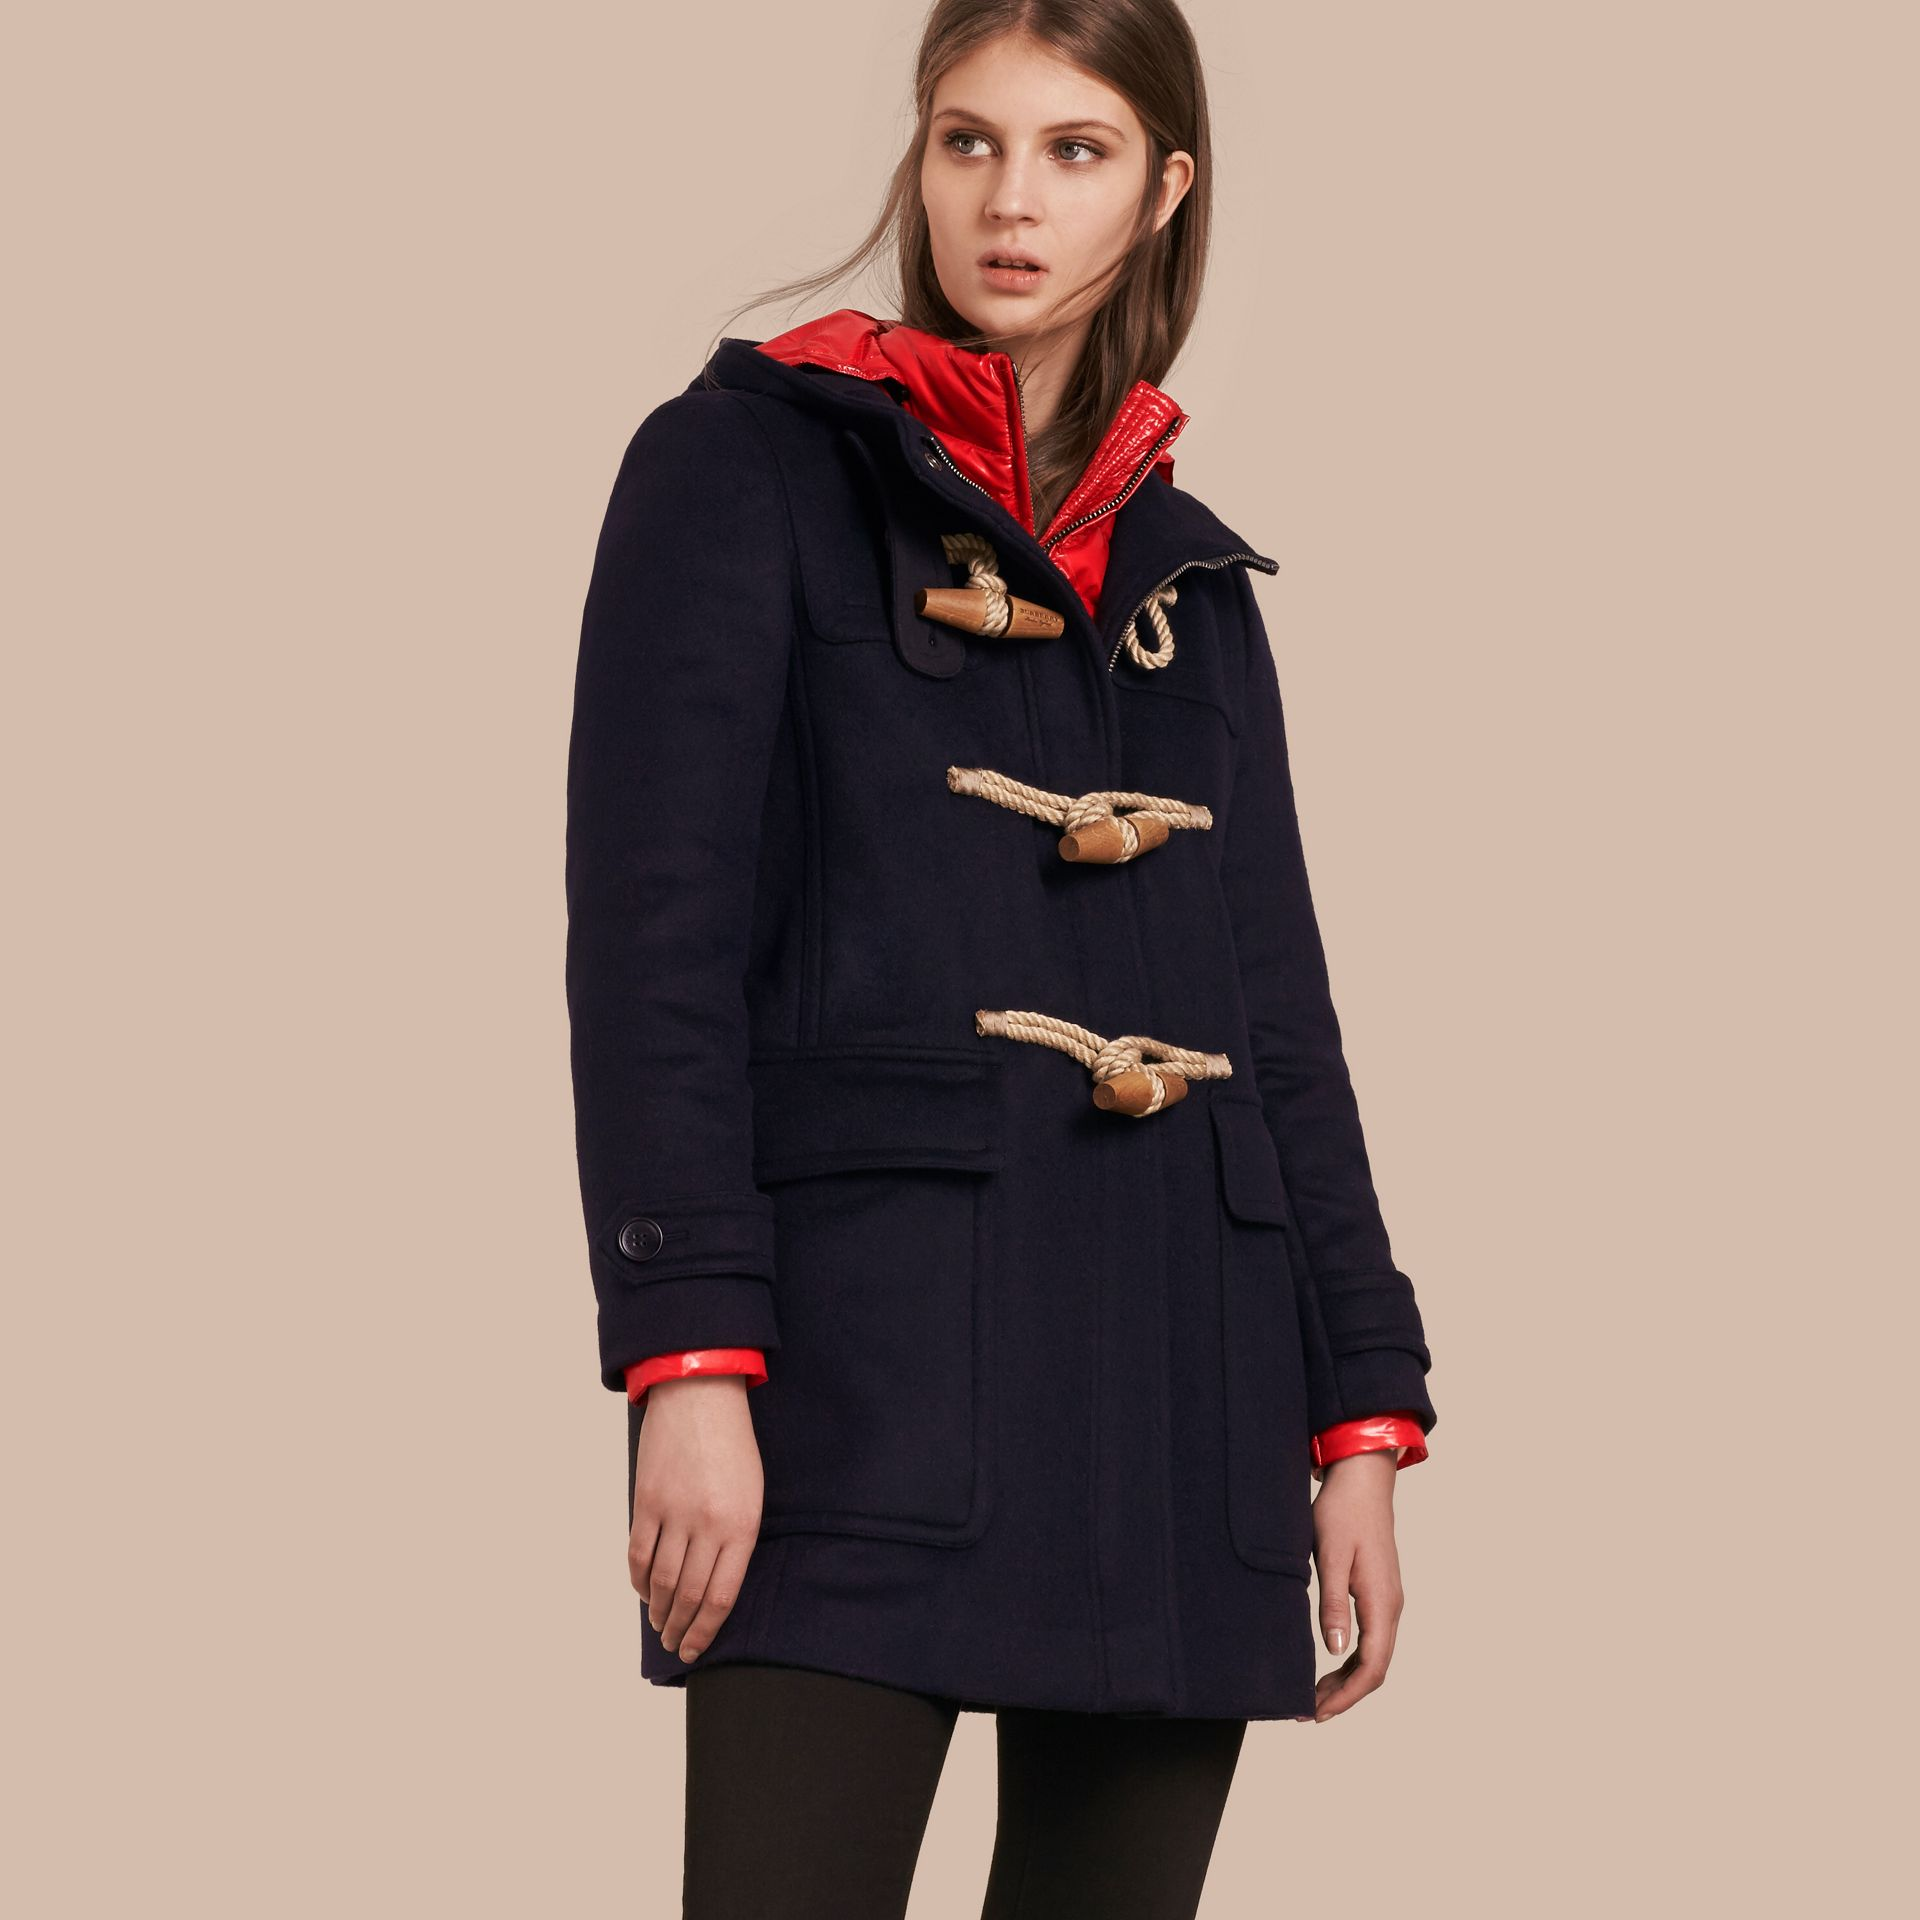 Navy check Wool Duffle Coat with Detachable Hooded Down-filled Warmer Navy Check - gallery image 1